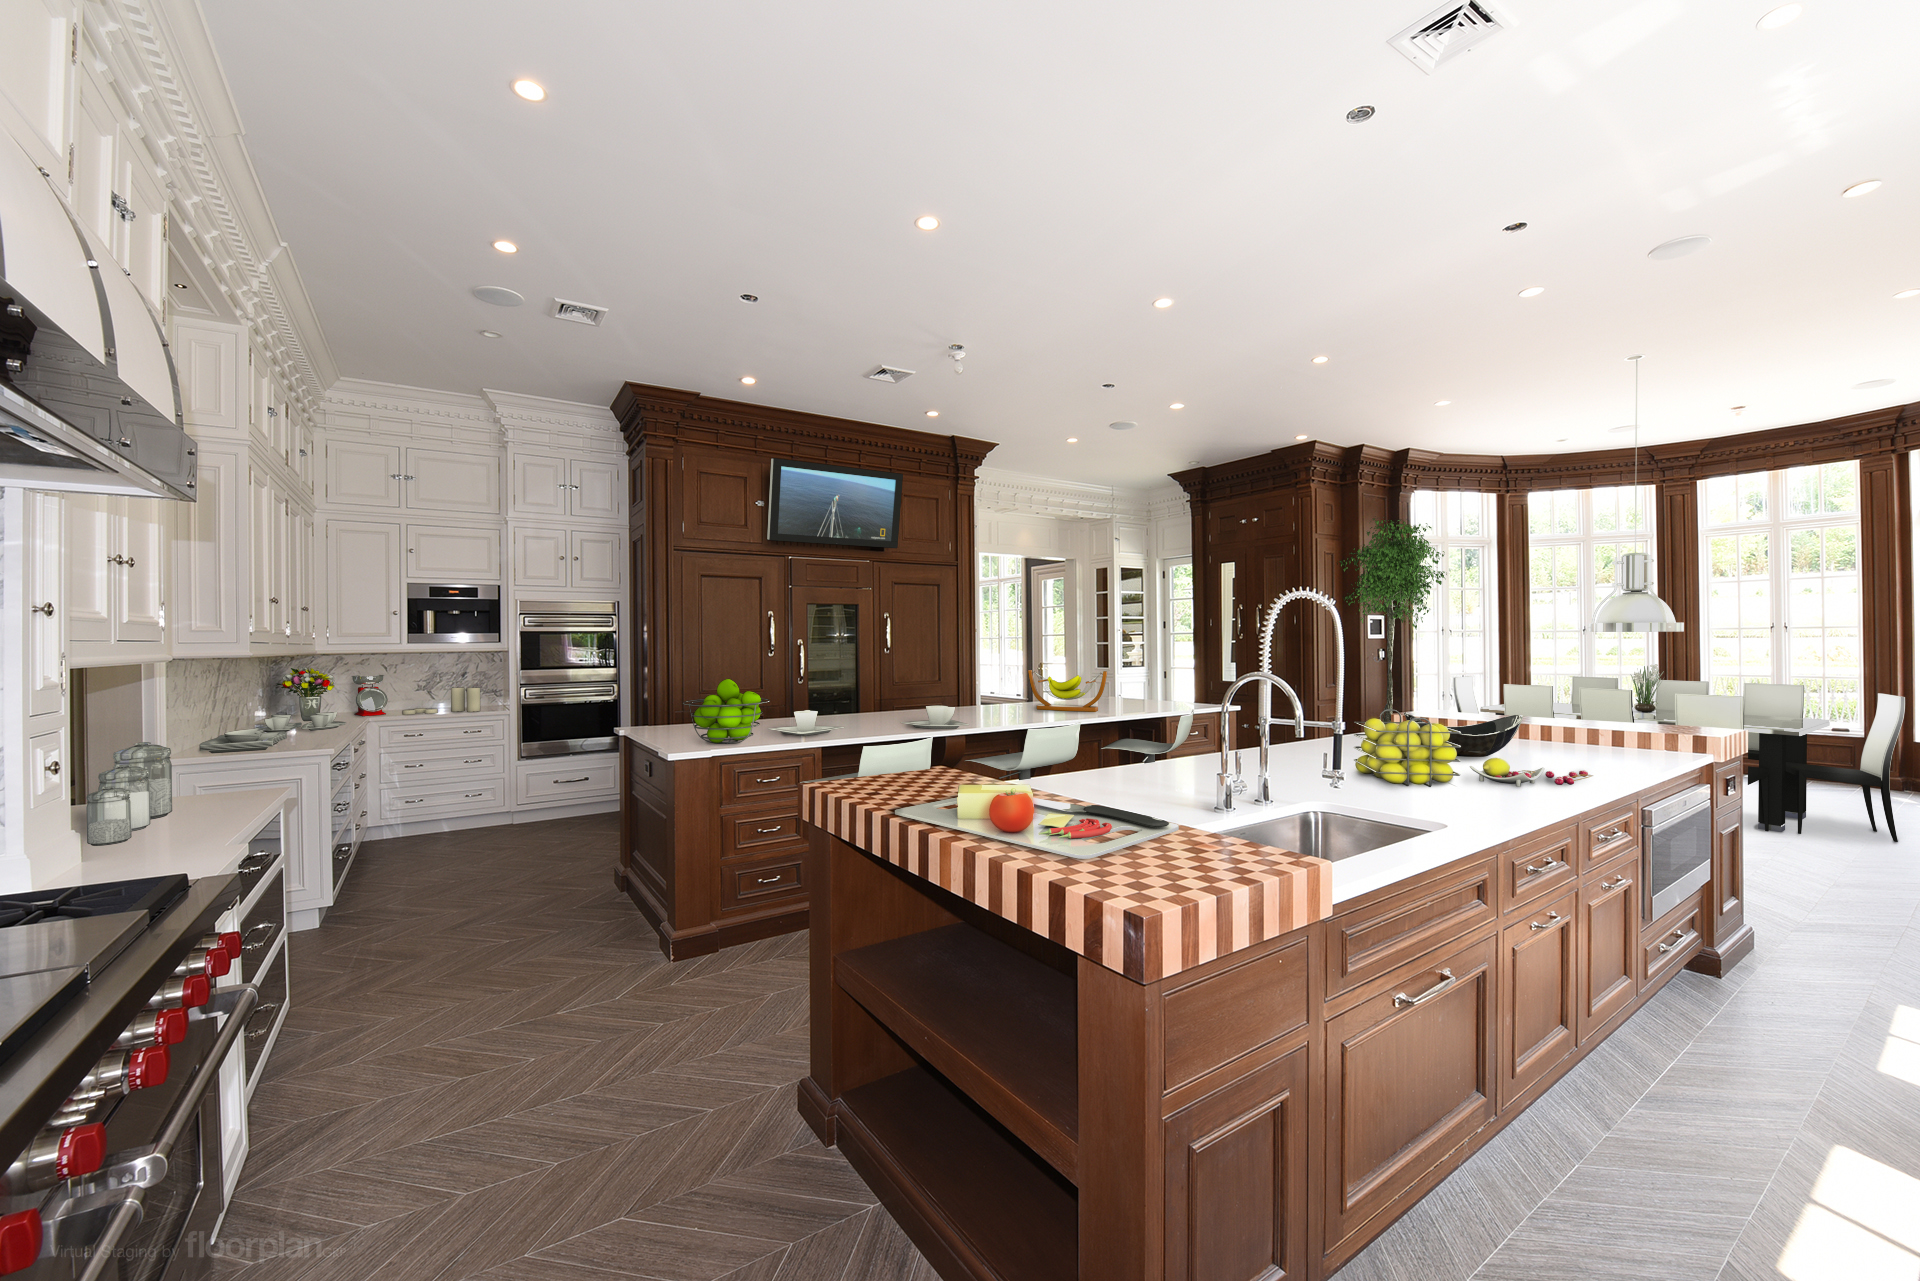 Virtually Staged Image of 15 Dupont Circle Kitchen